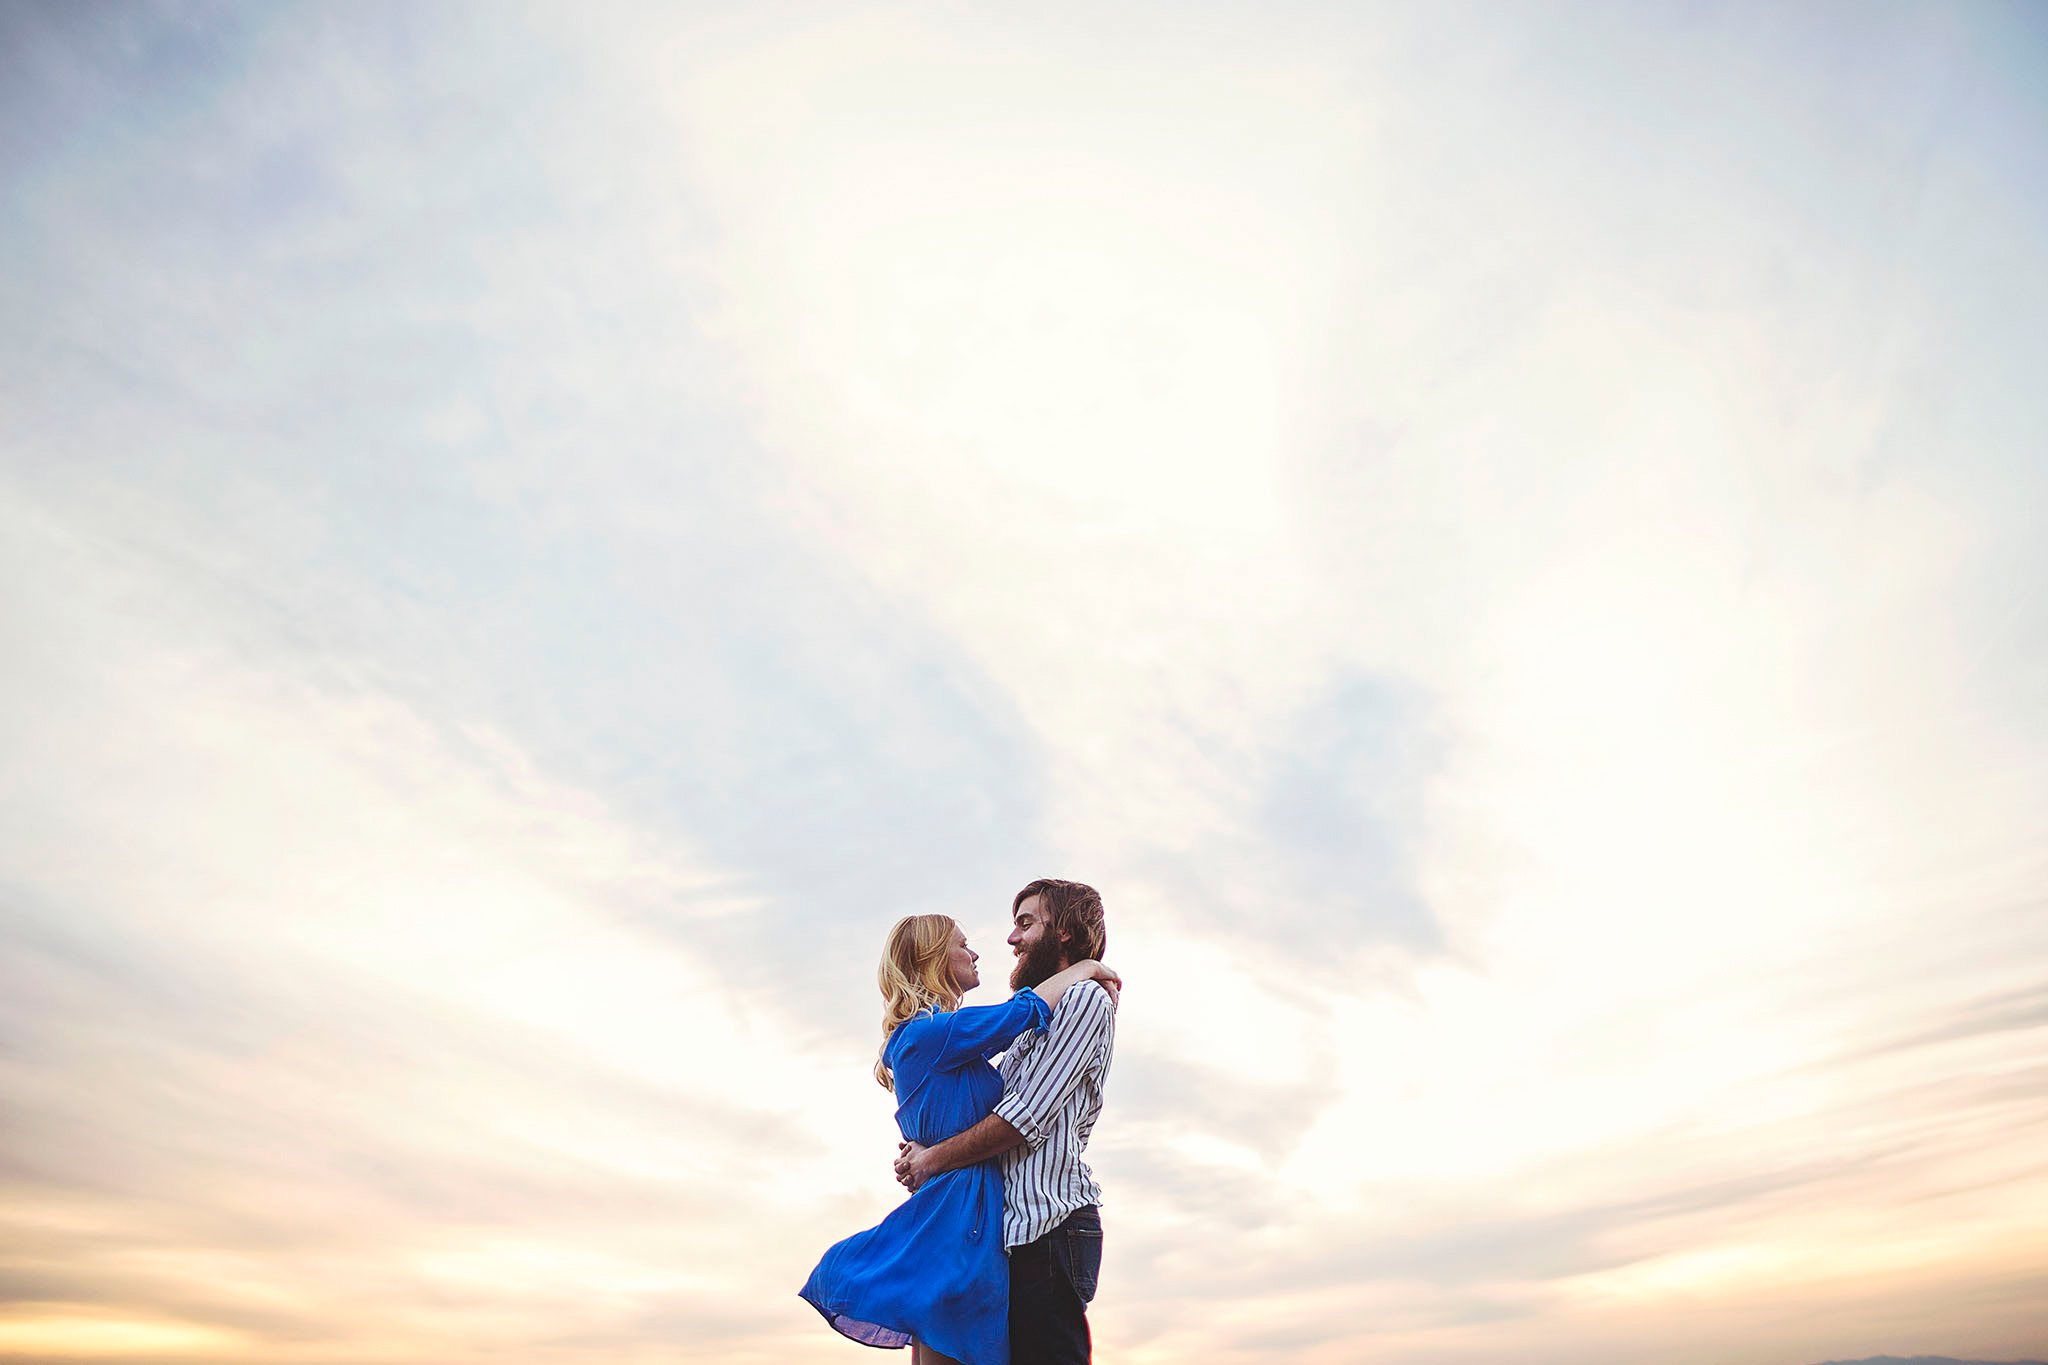 Liz Anne Photography | Piedra Lisa Canyon | Albuquerque | New Mexico | Engagement Session 01